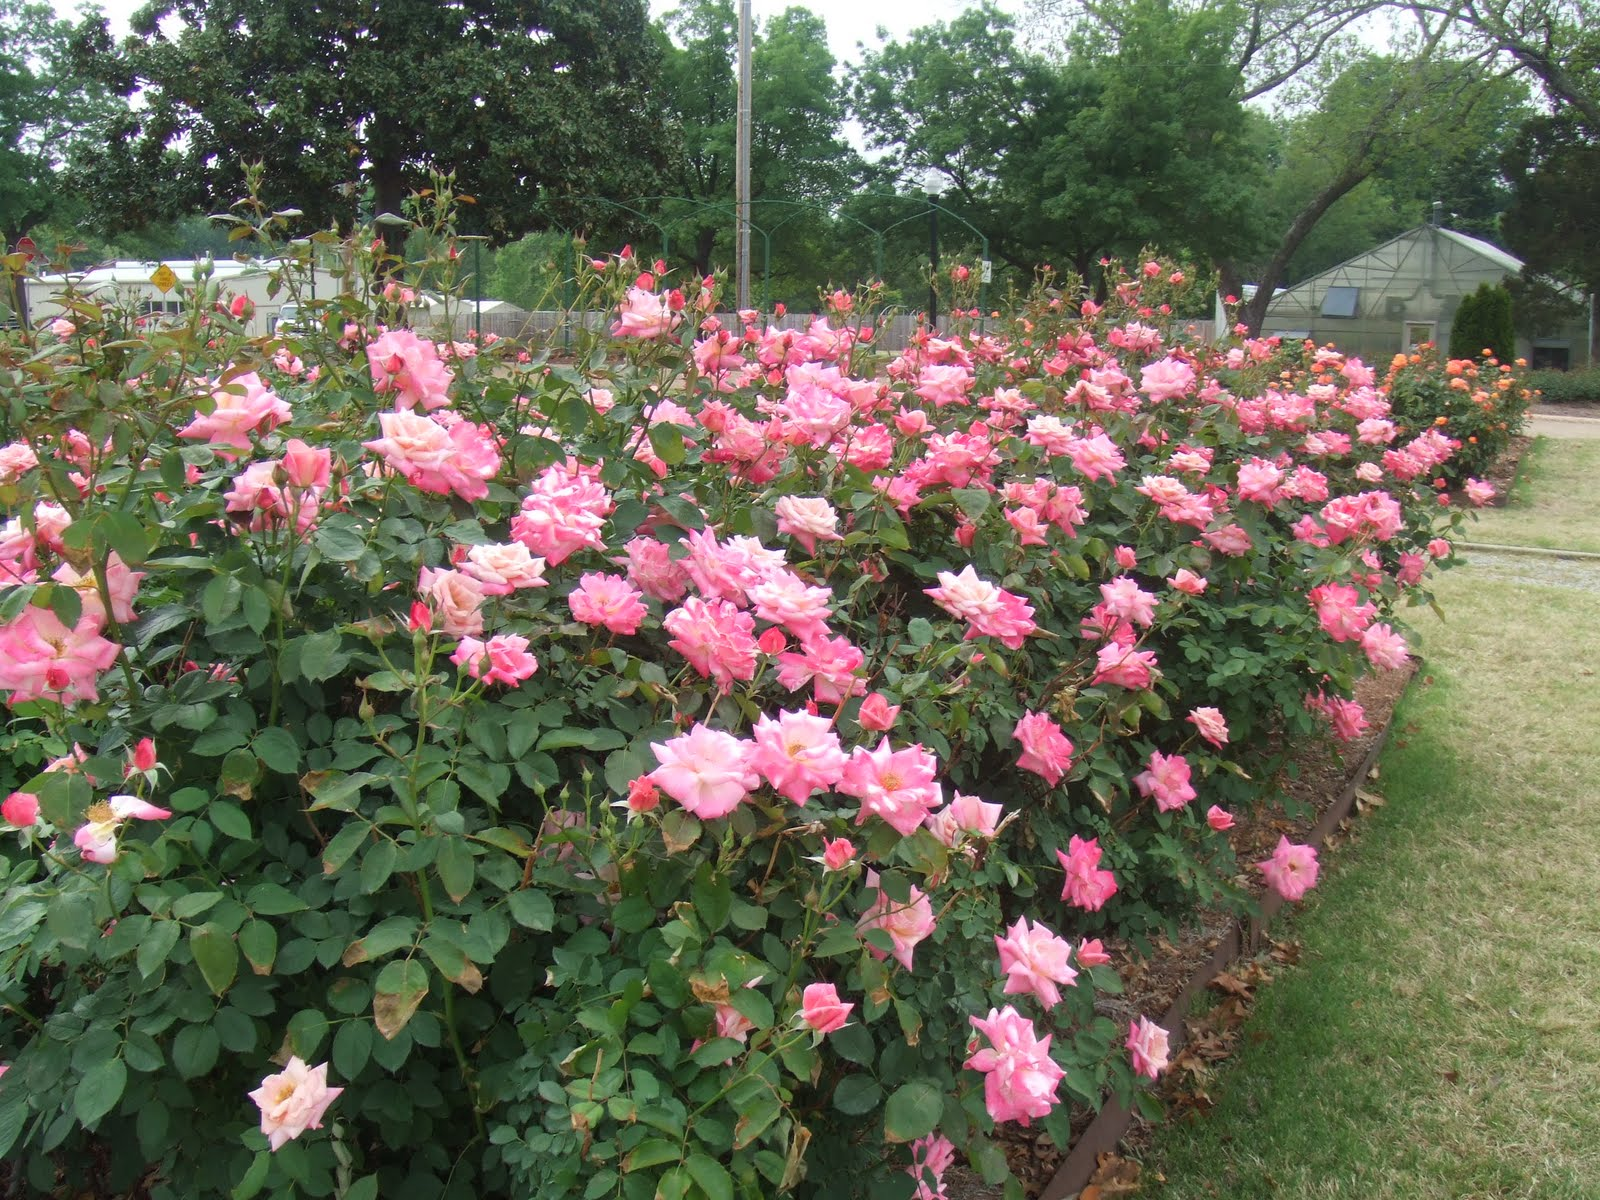 Adjacent To The Garden Center Is Extraordinary Tulsa Rose Munil Was Constructed With Hand Labor And Teams Of Horses As